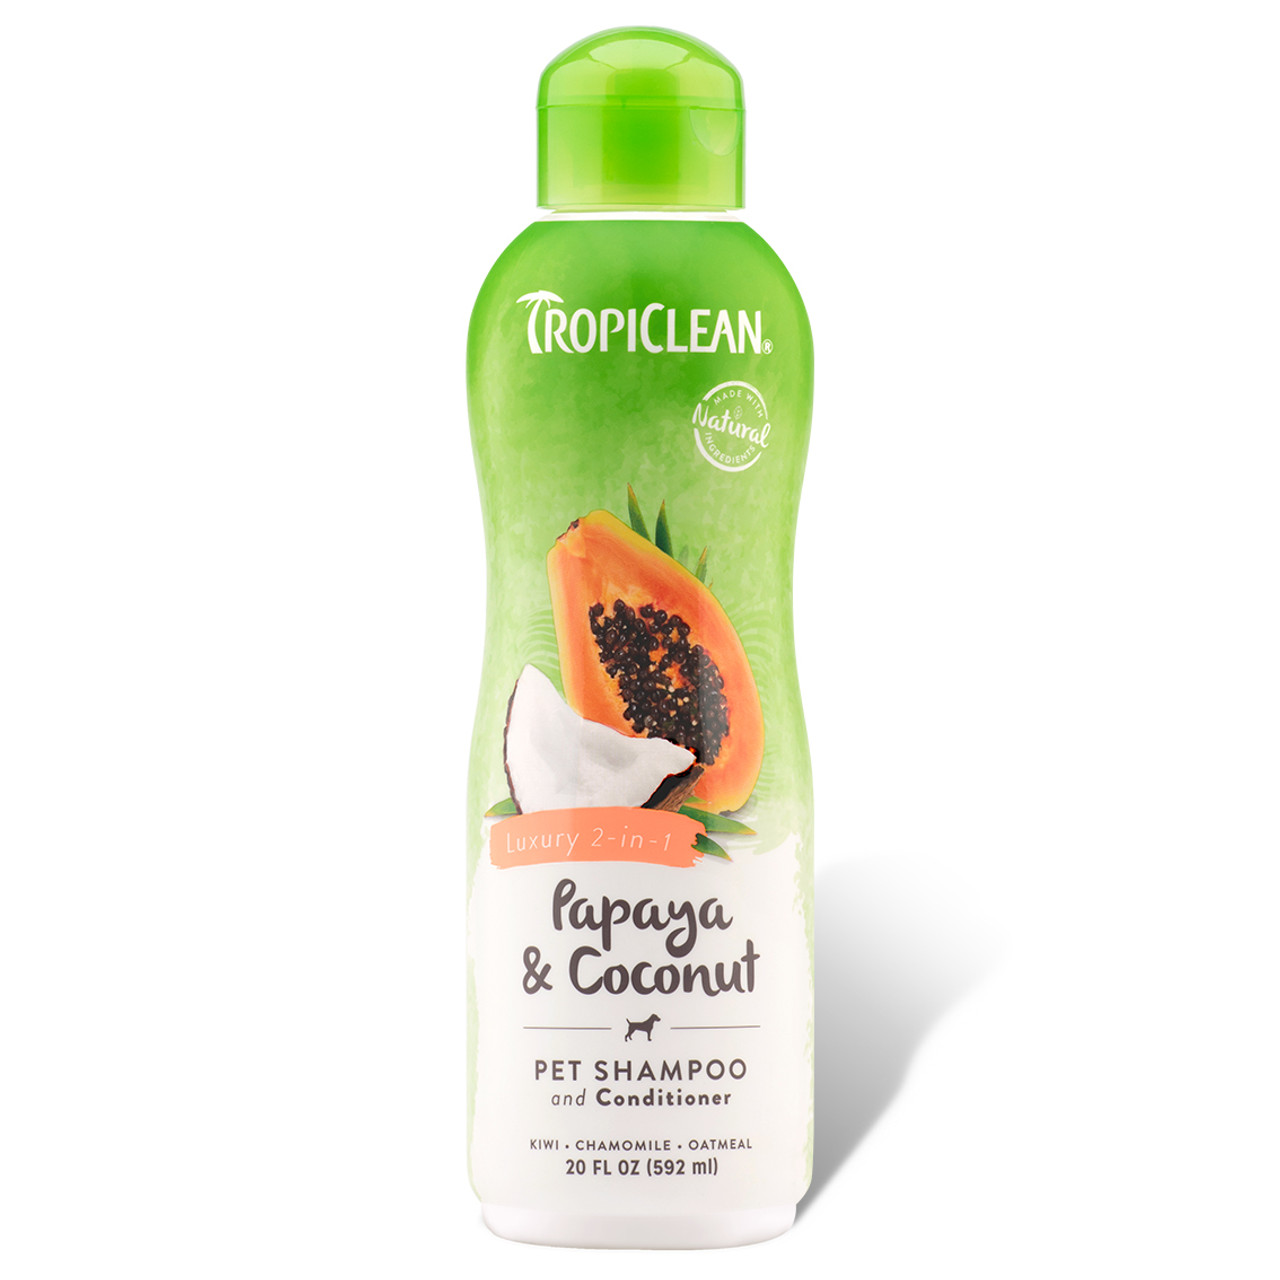 TropiClean Papaya & Coconut Luxury 2-in-1 Pet Shampoo & Conditioner